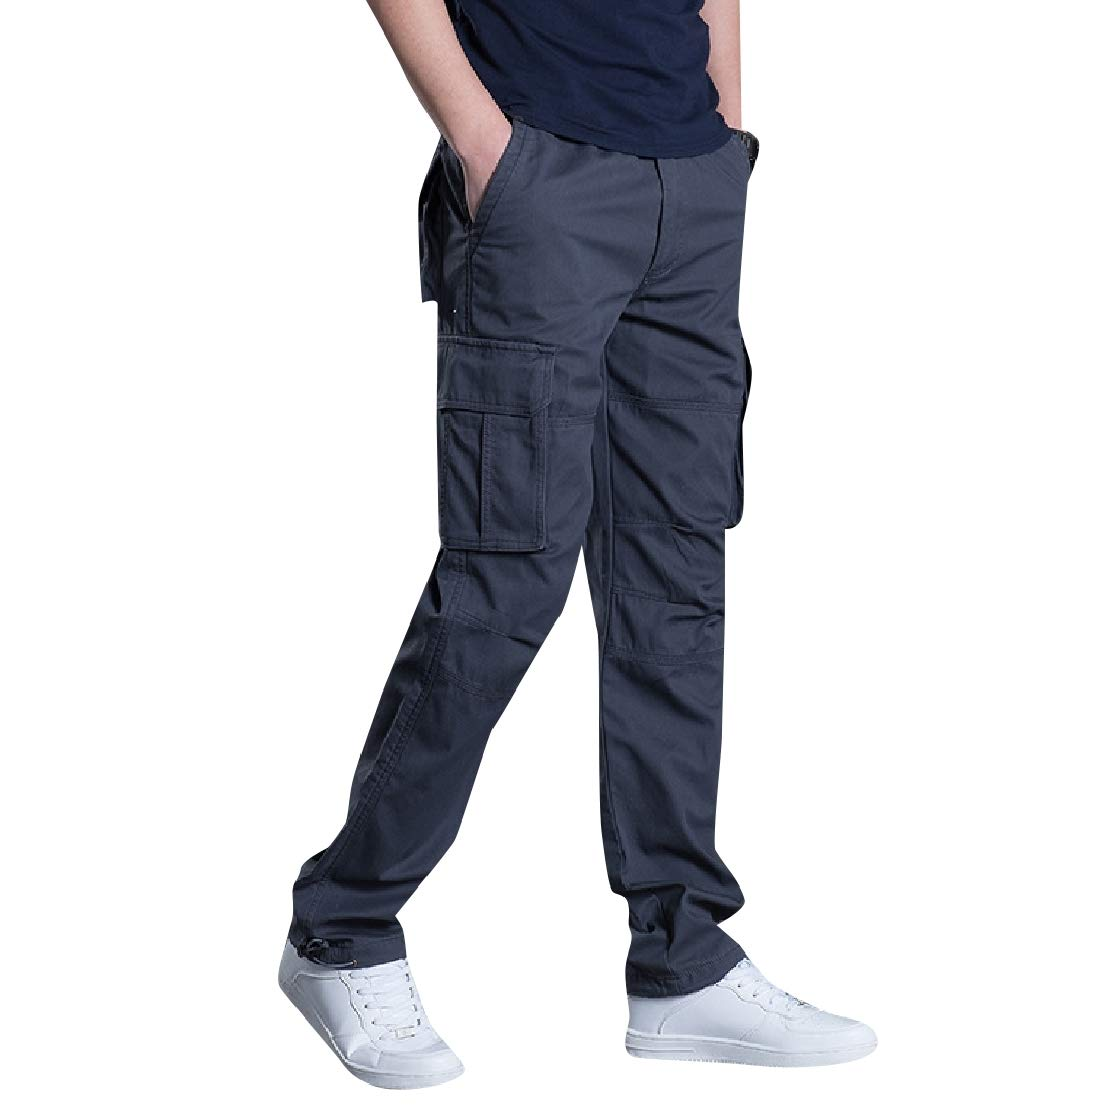 YUNY Men Pockets Collection Baggy Outdoor Juniors Plus Size Pants 1 2XL